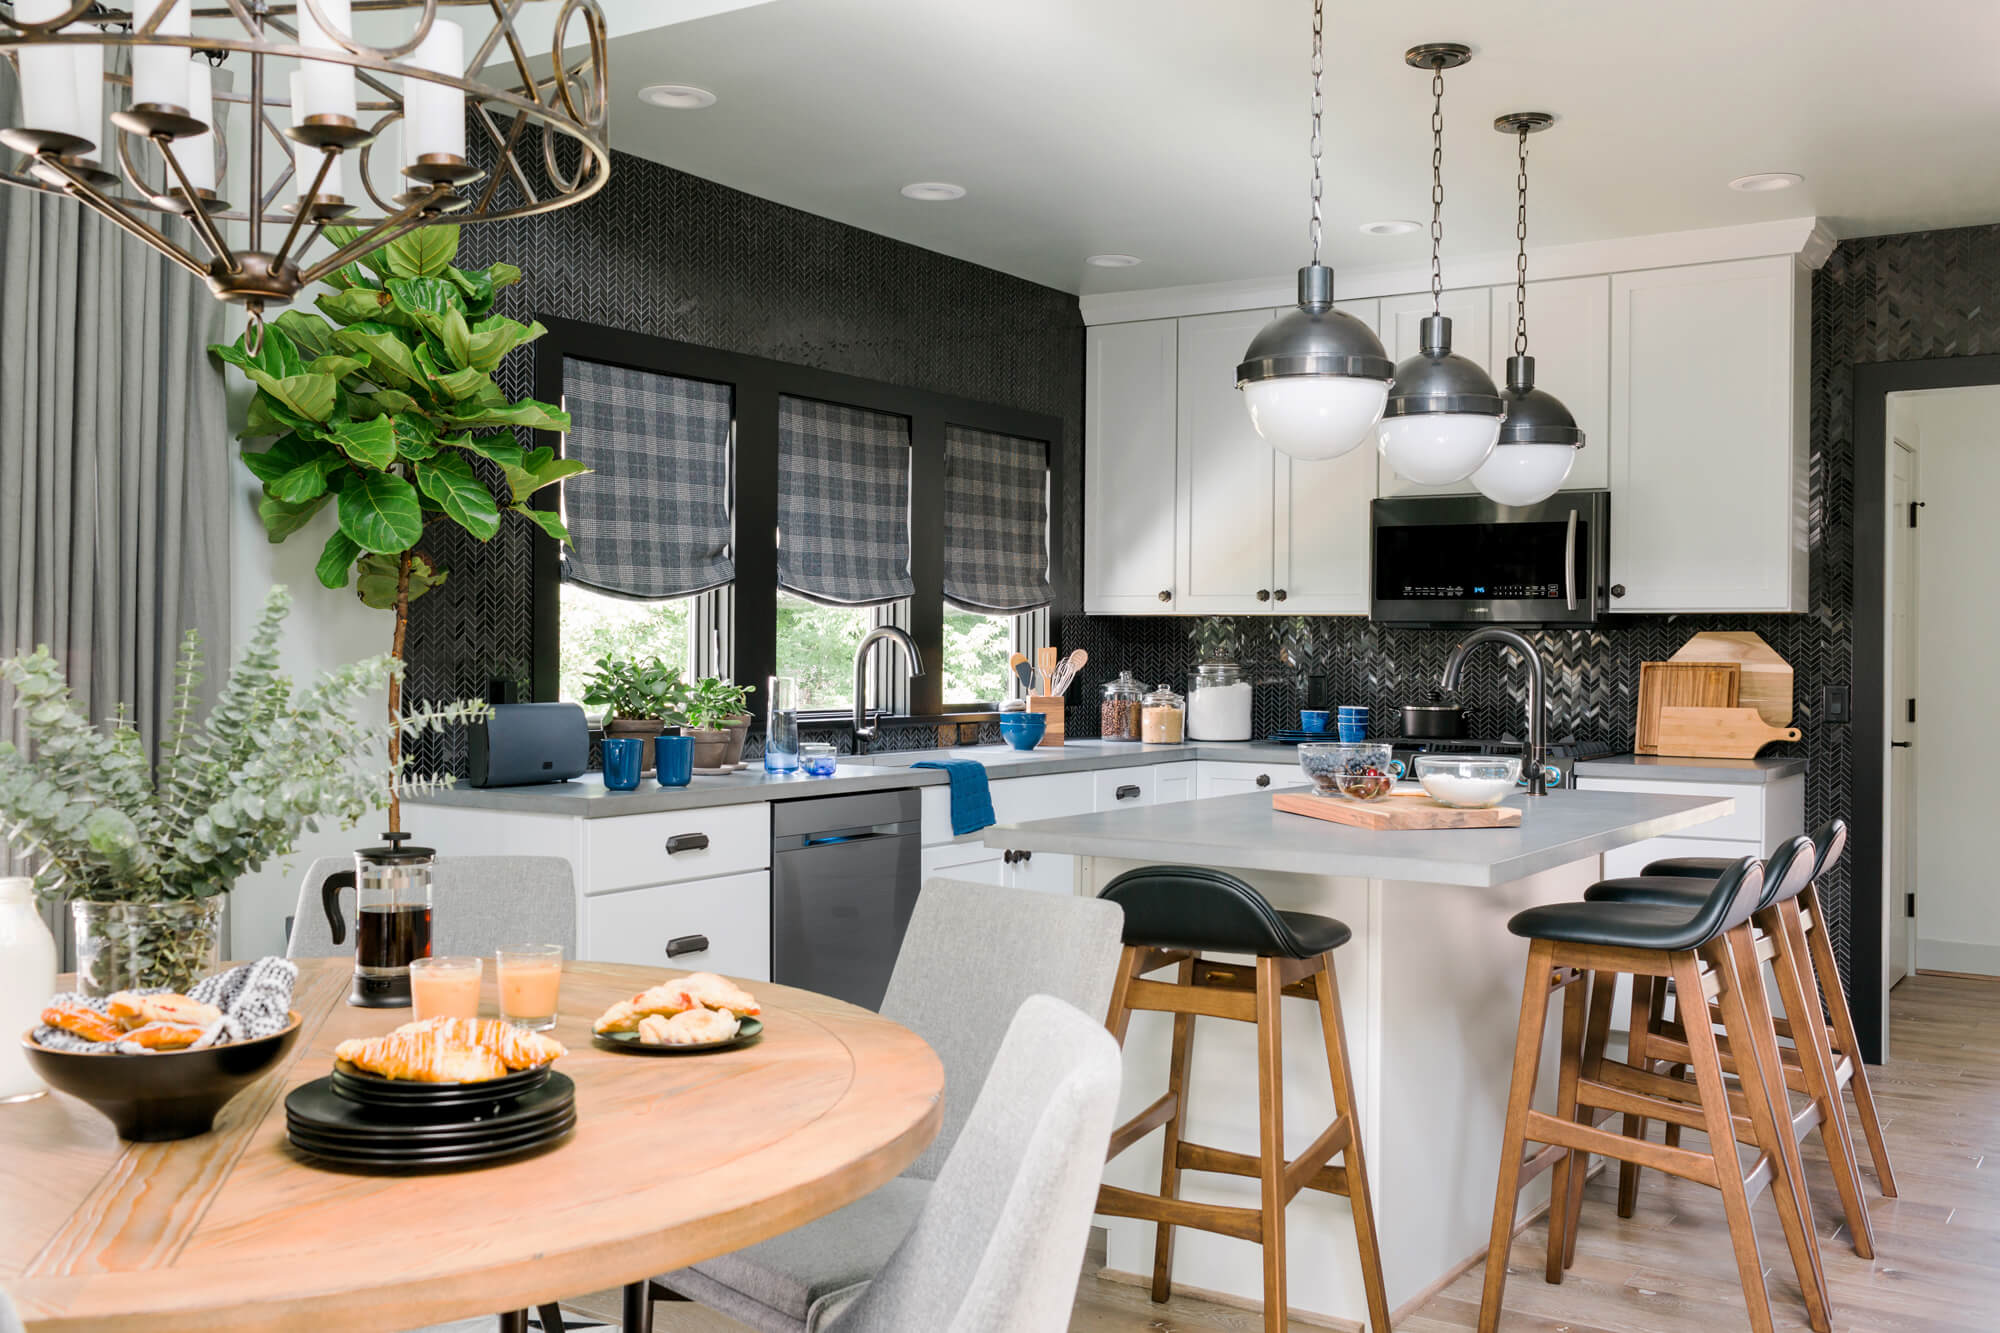 Contemporary Kitchen Designs: Elements To Add For The Transformation